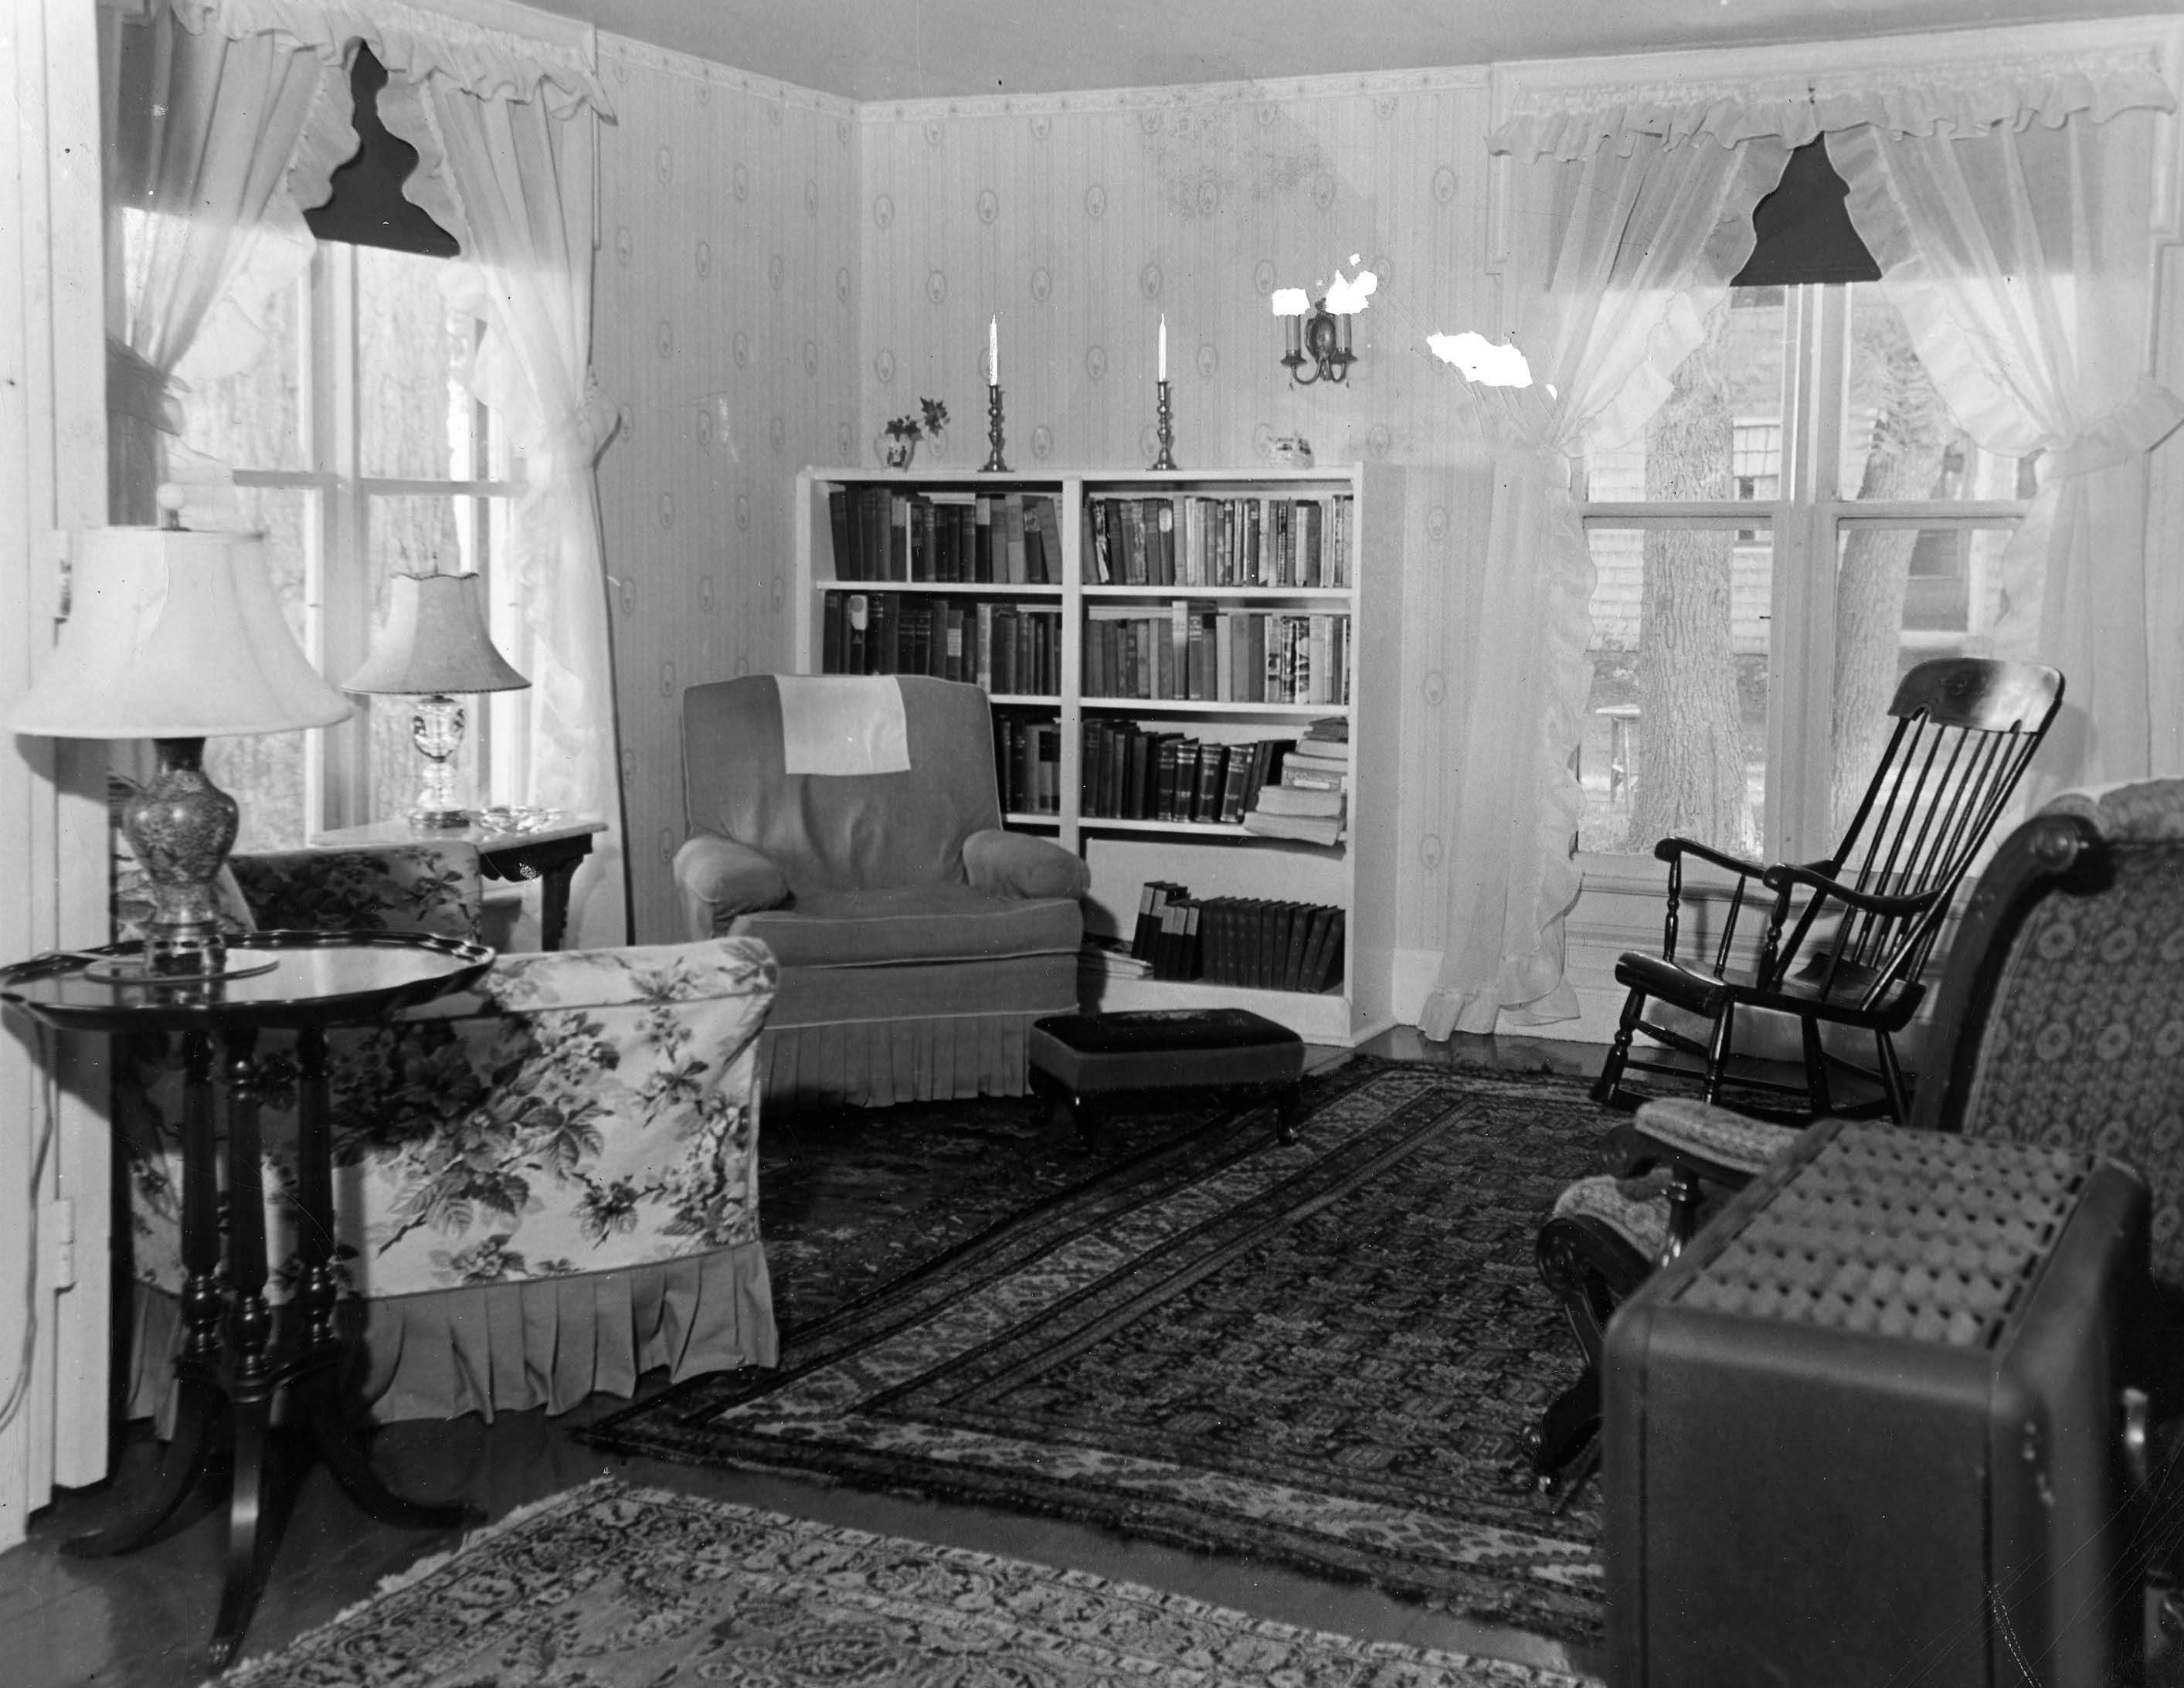 Living Room 1940s 1940s living room photos | the singing brook inn: the beginning